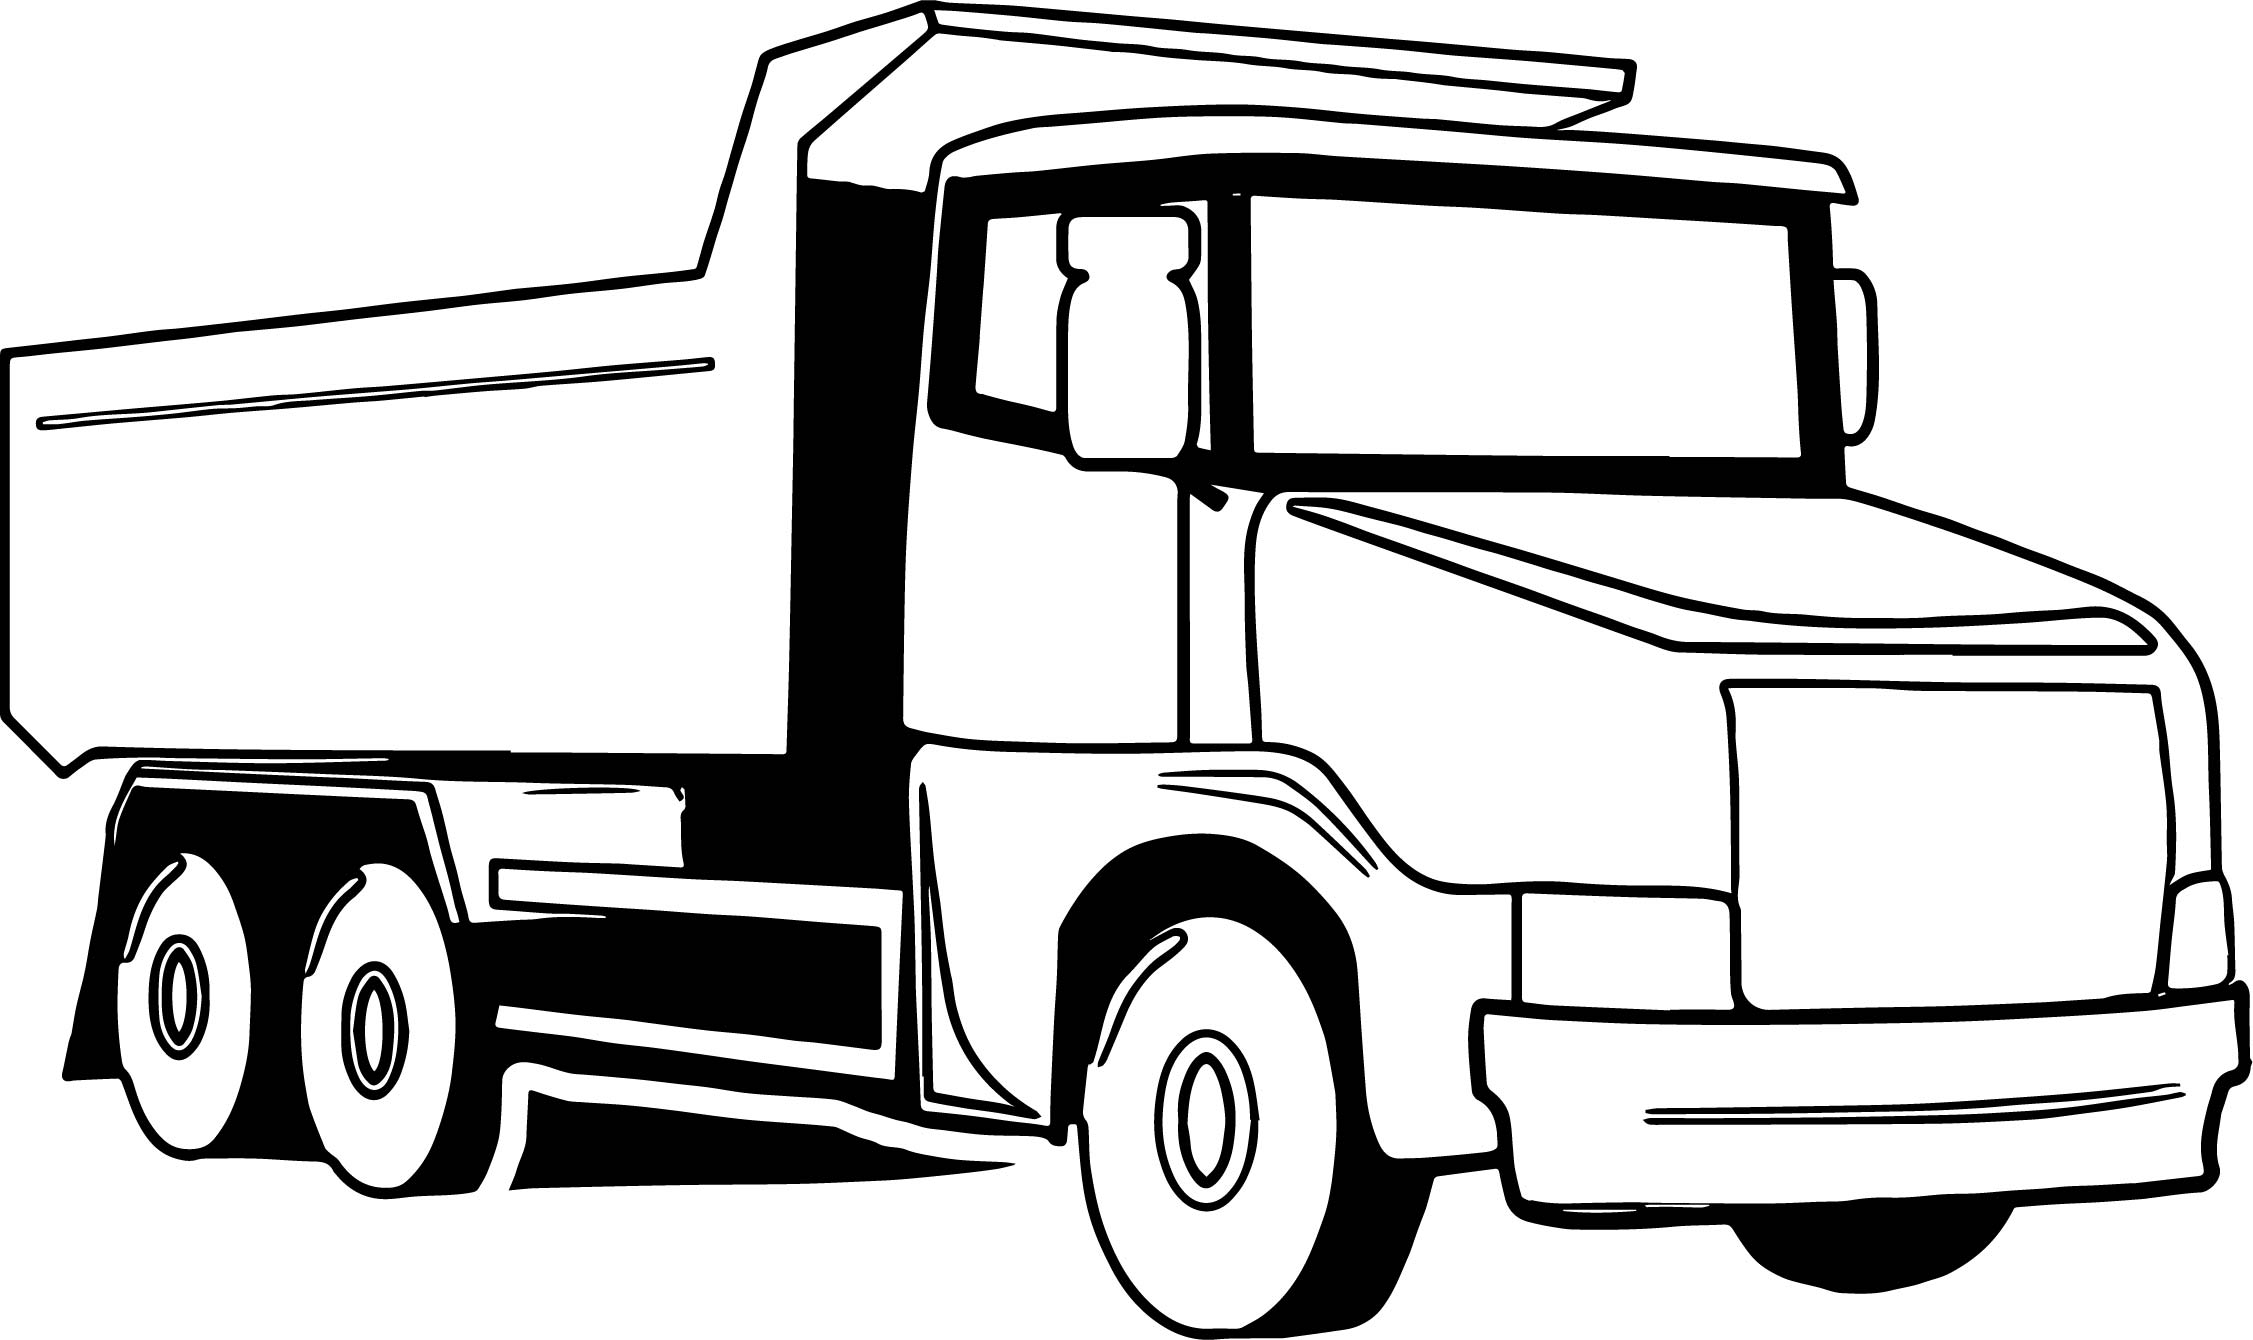 Truck Big Coloring Page in addition Used 2005 Hi Lo Trailer Towlite 17t 622417 29 further Truck Coloring Sheet further Log Truck in addition 40 Free Printable Truck Coloring Pages Download. on toy trucks and trailers